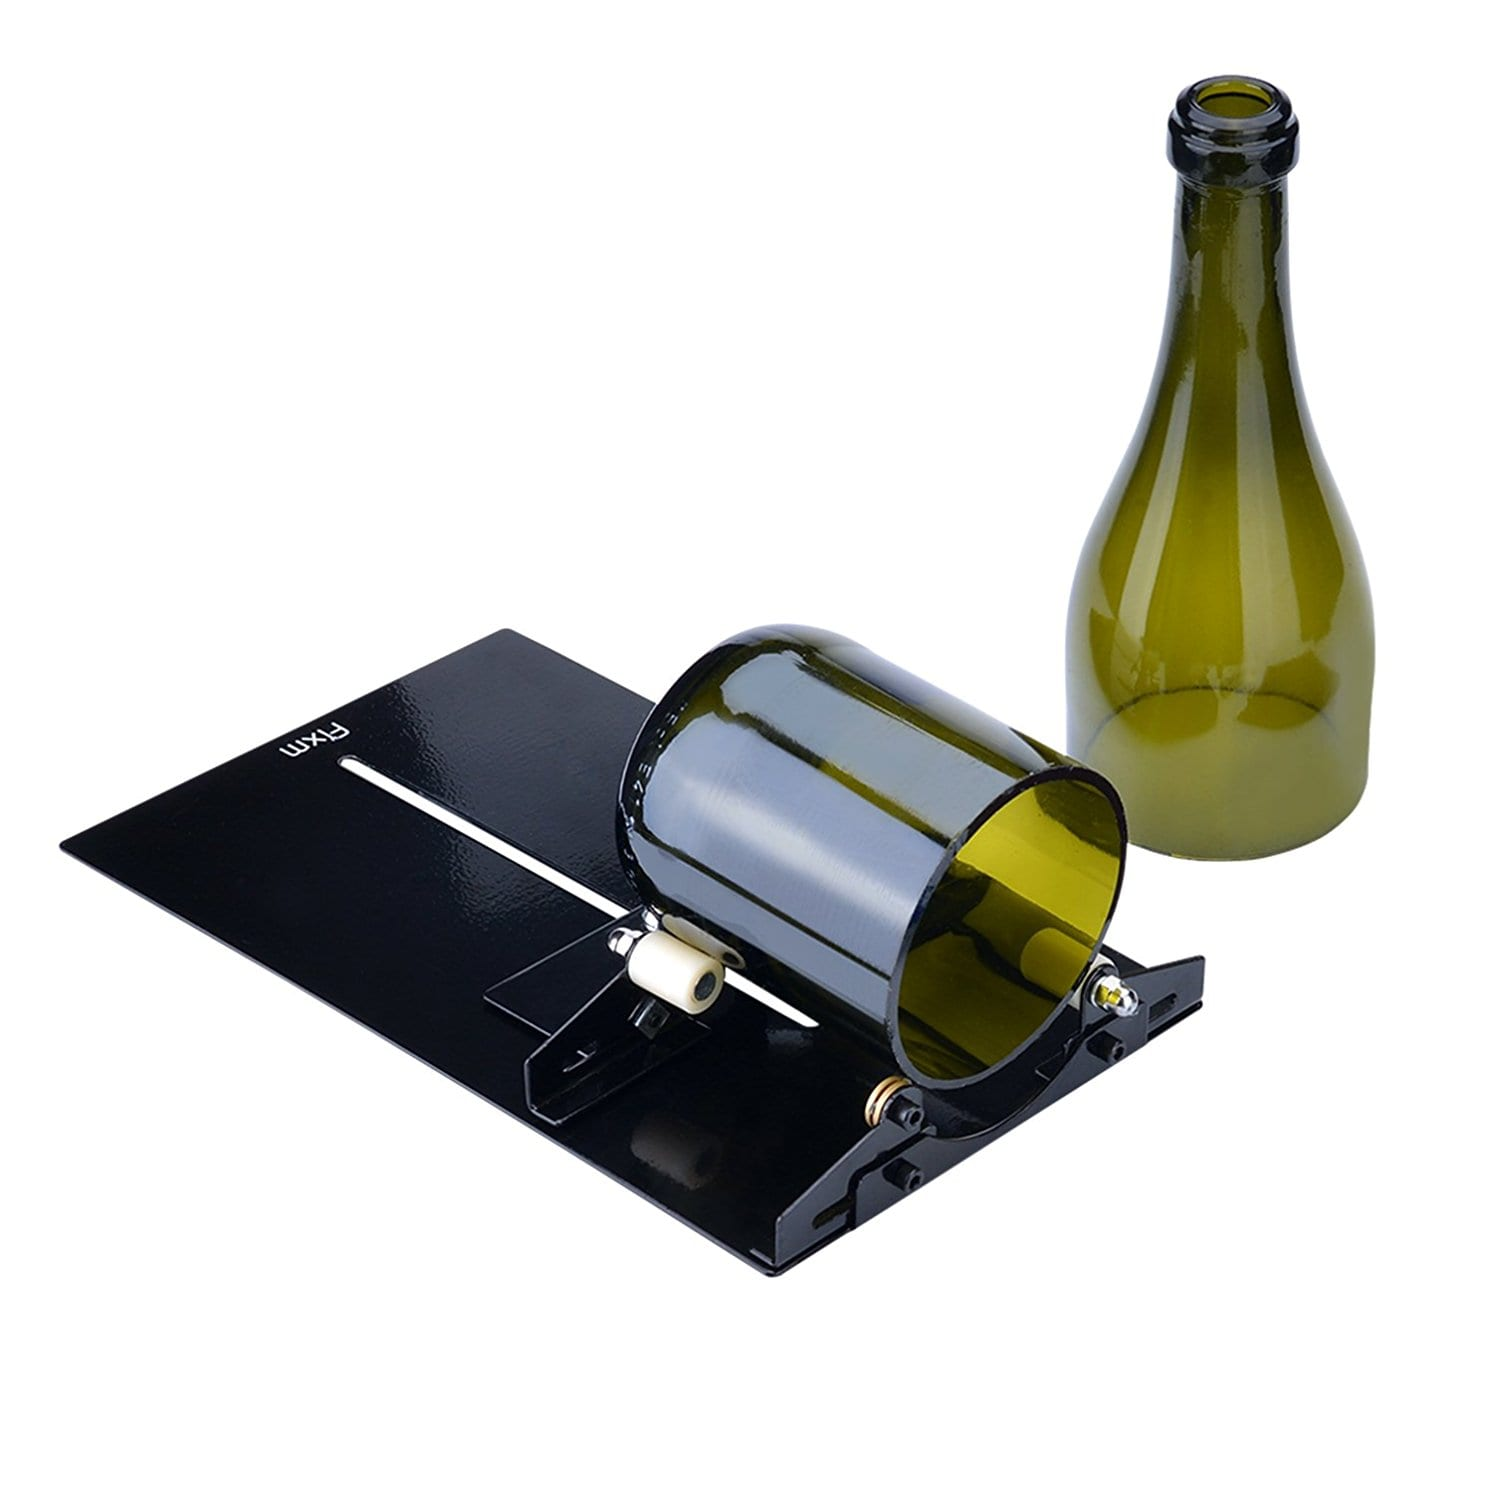 Cut Glass on bottle cutter